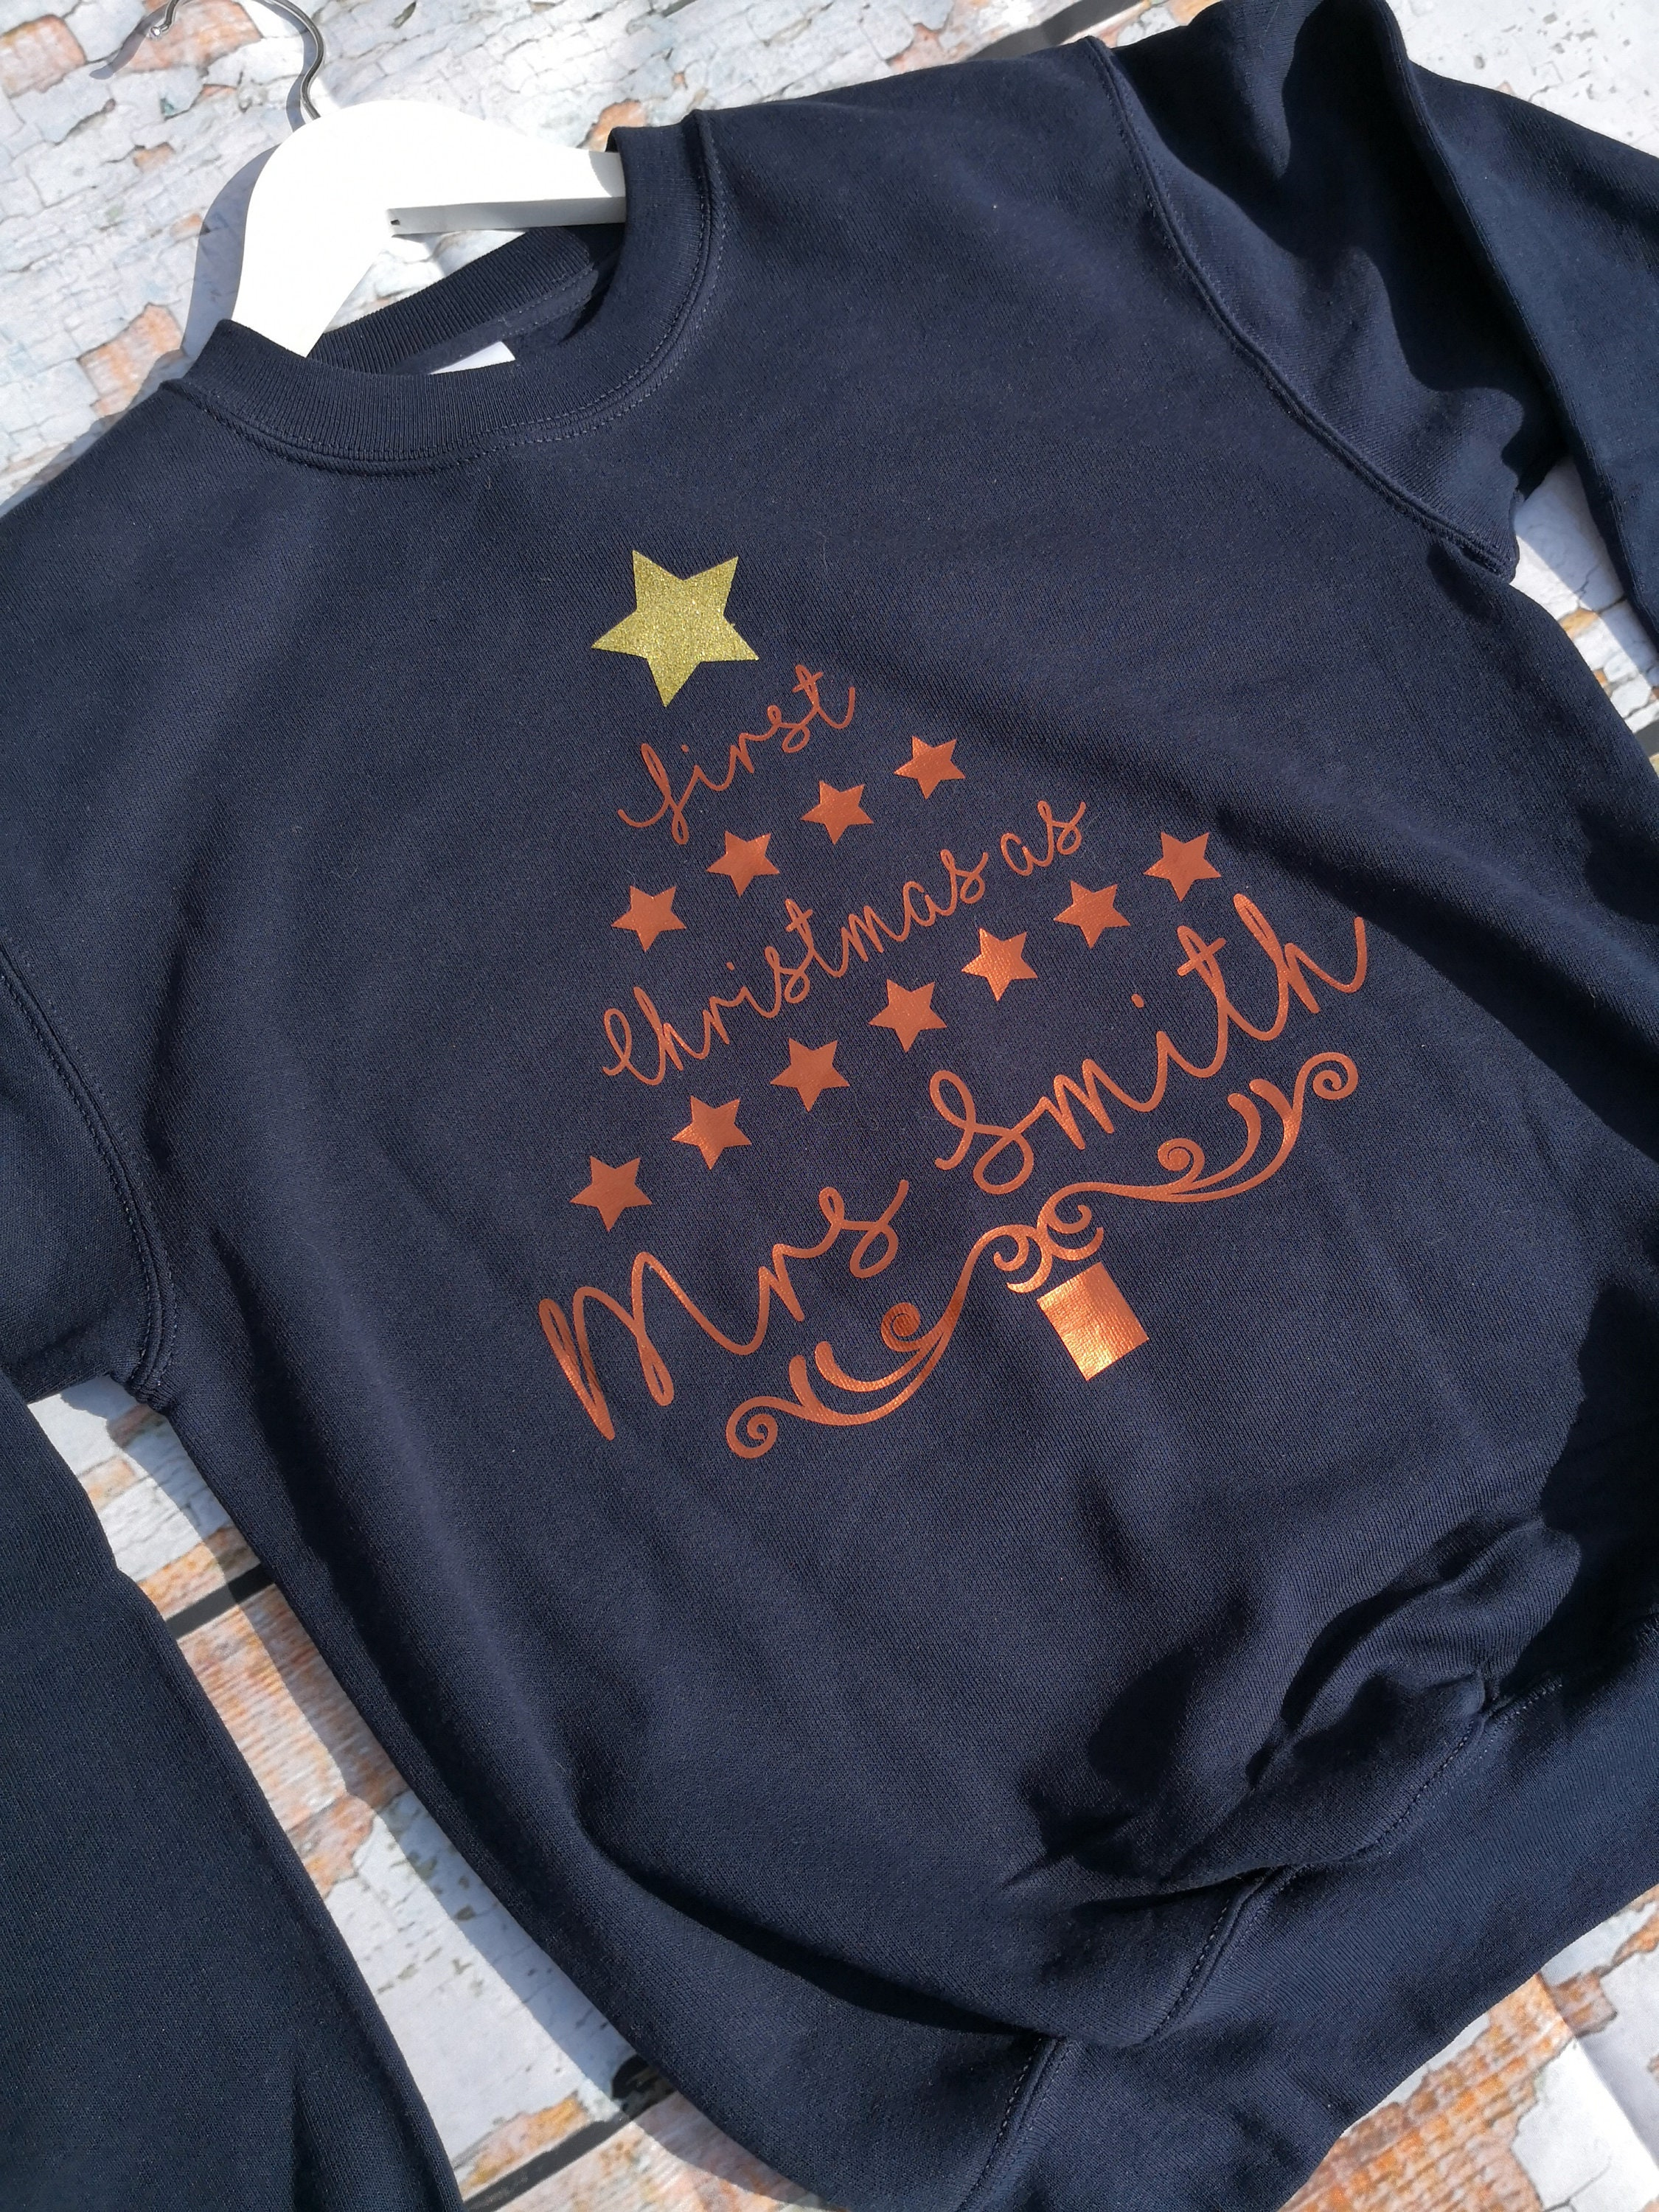 First Christmas As Mrs Personalised Christmas Jumper Sweatshirt Christmas Gift Wife Gift Wedding Gifts Gifts For Her Christmas Jumper